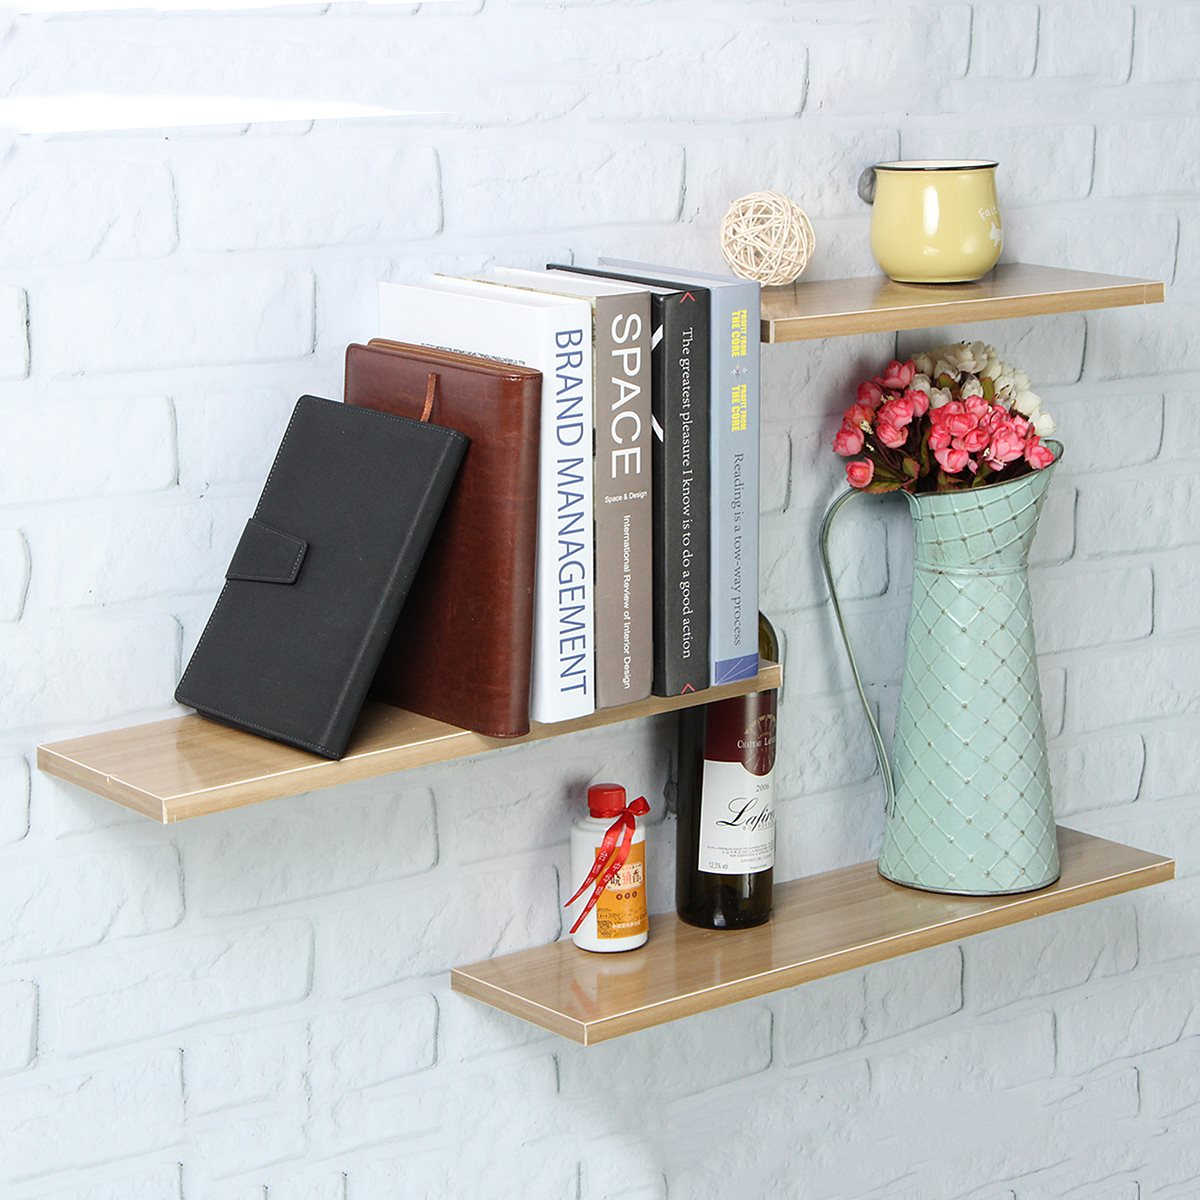 3 Teile/satz Holz Wandregal Bücherregal Vase Display Rack Halter ...